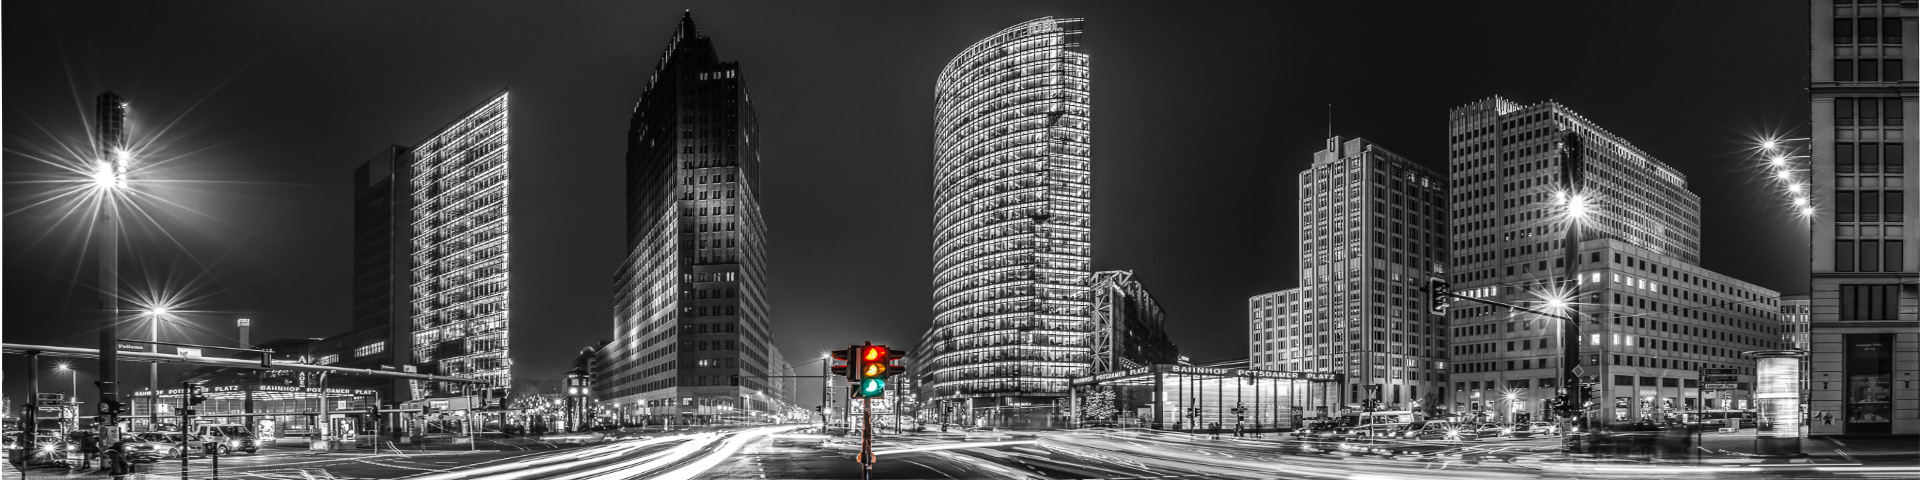 Berlin Potsdamer Platz Colourkey Panorama EGH